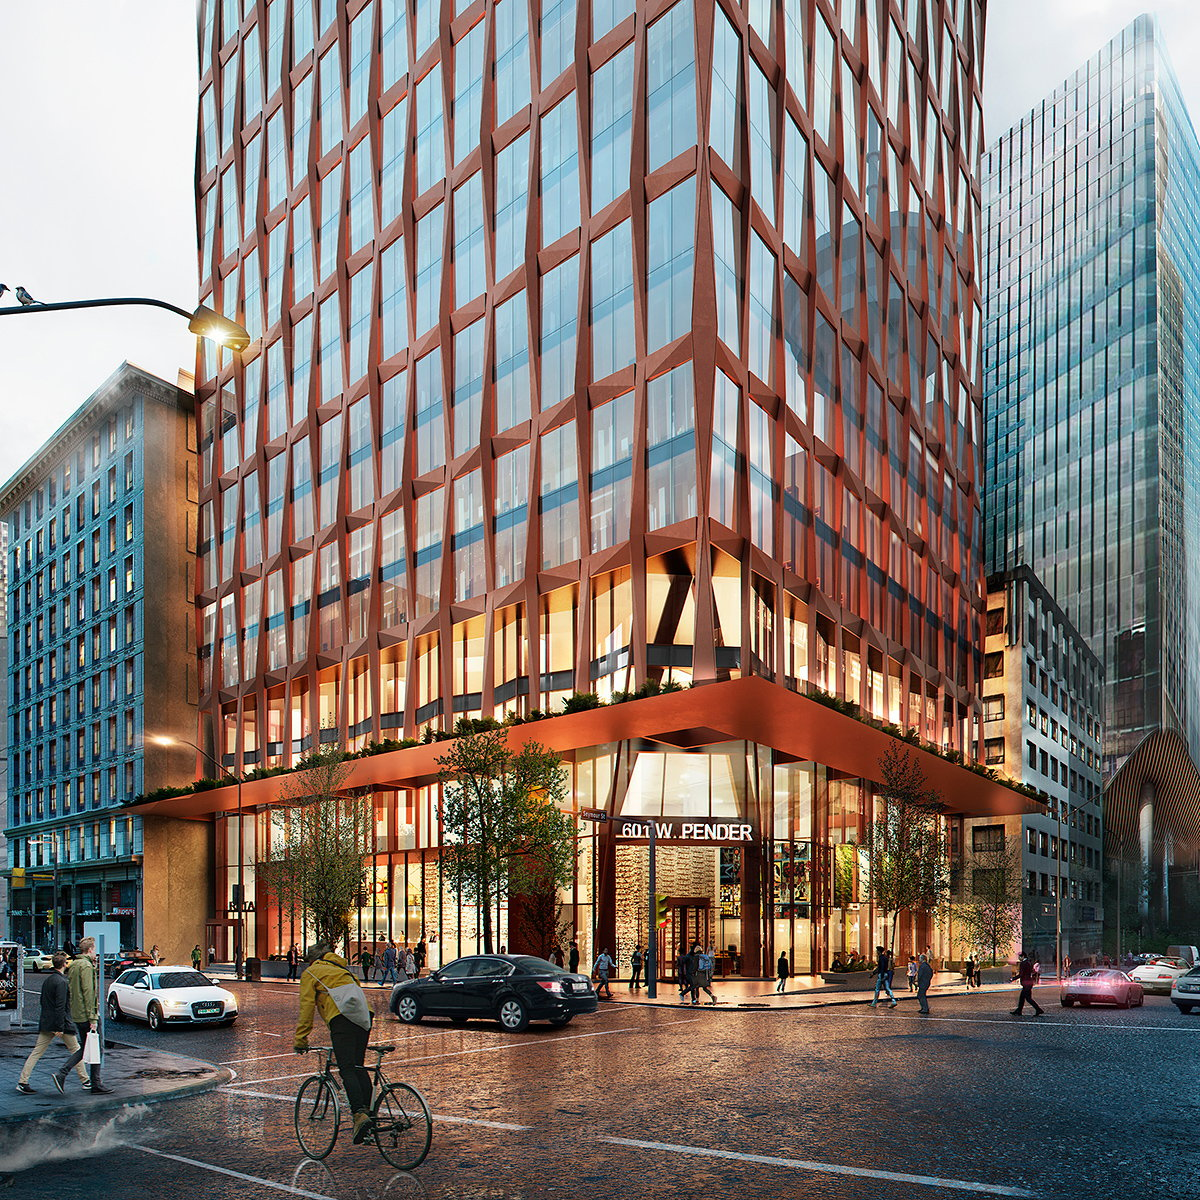 KPF Receives City Approval for 601 West Pender Street in Vancouver